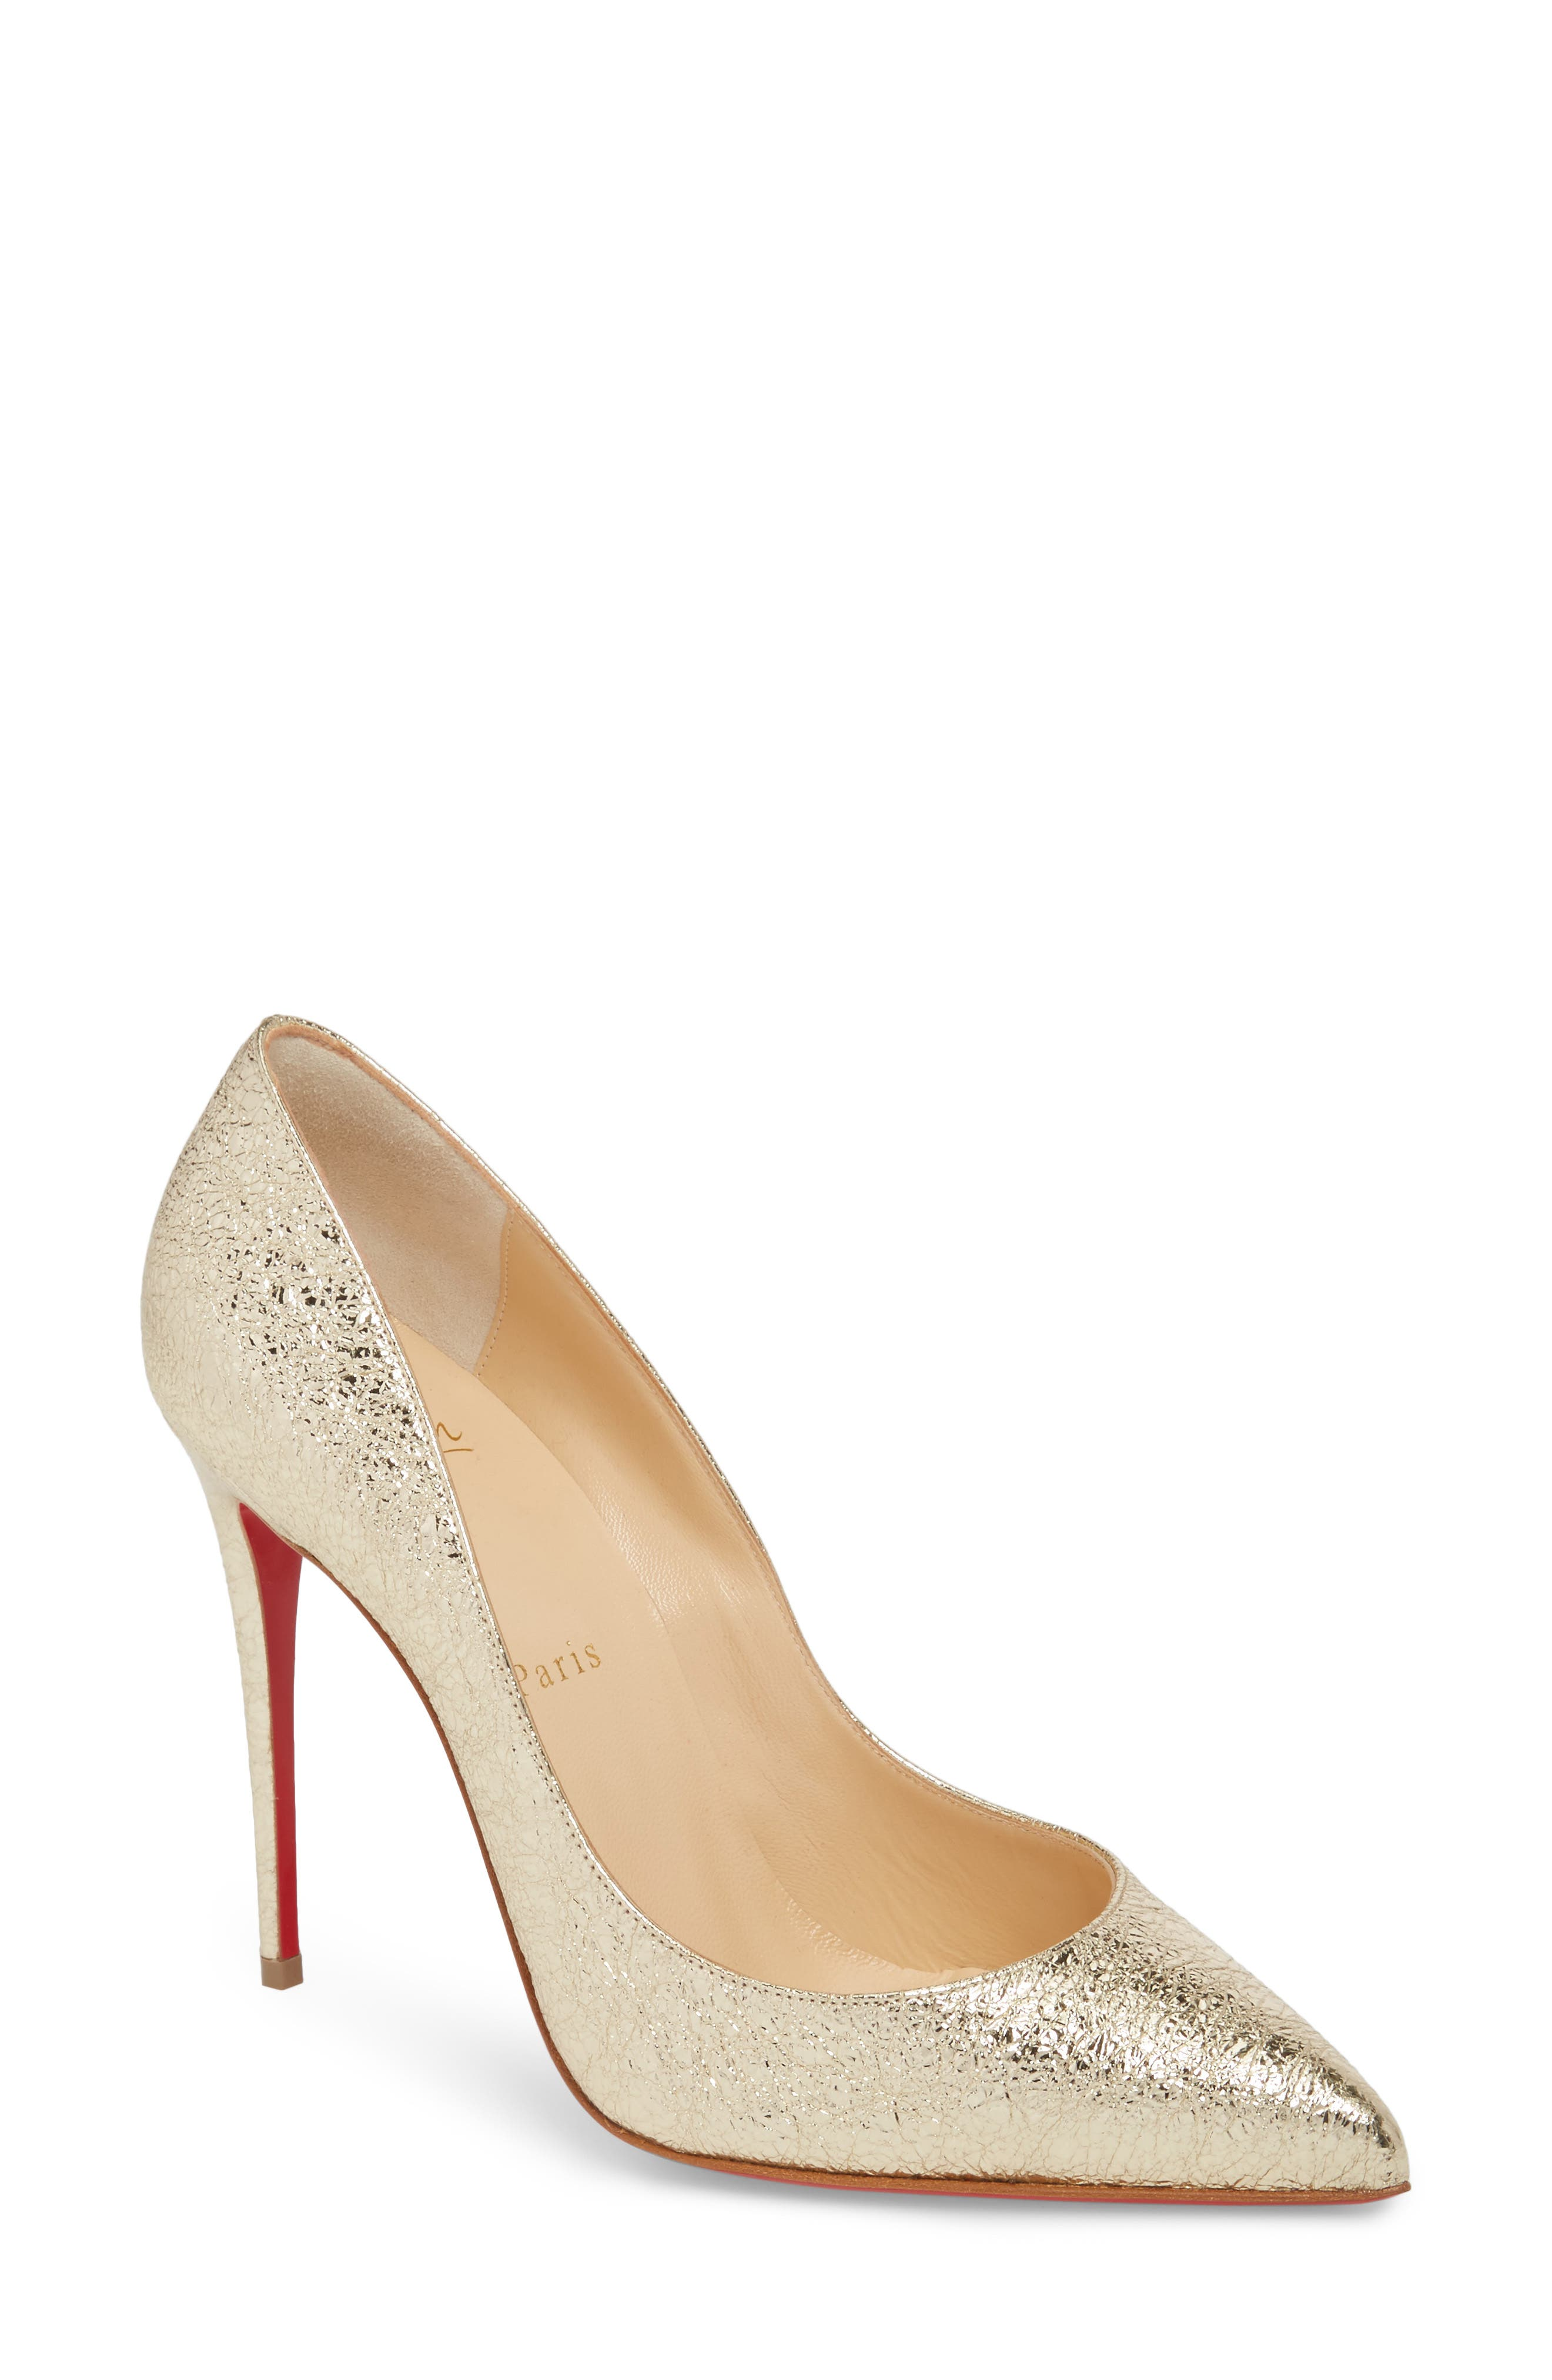 Pigalle Follies Pointy Toe Pump,                         Main,                         color, Platine